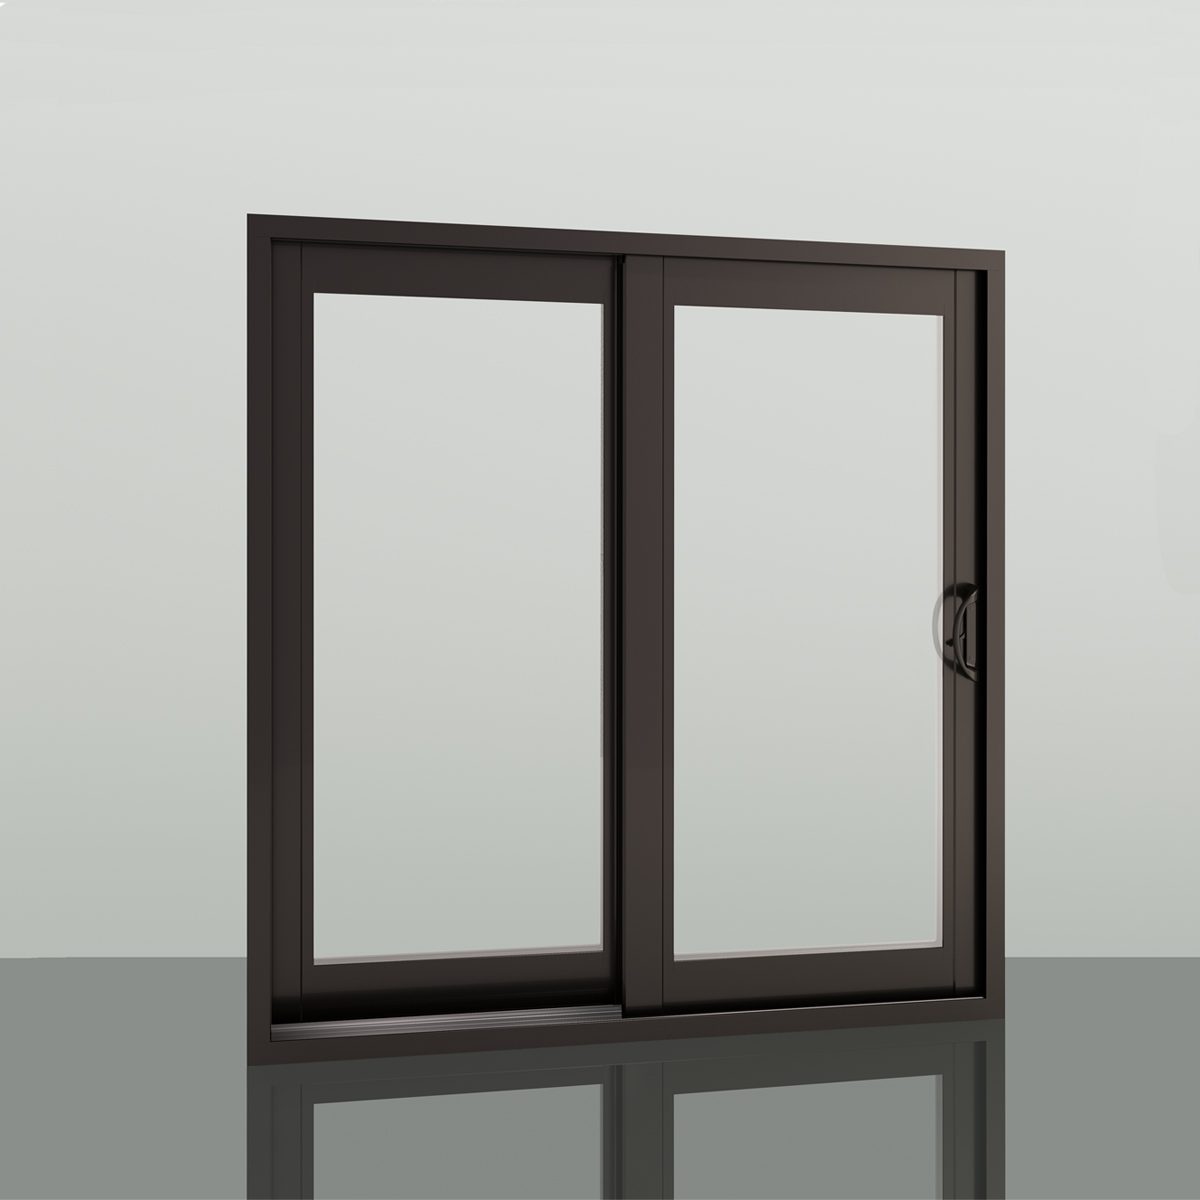 Products and product information mi windows and doors 100 series sliding glass door planetlyrics